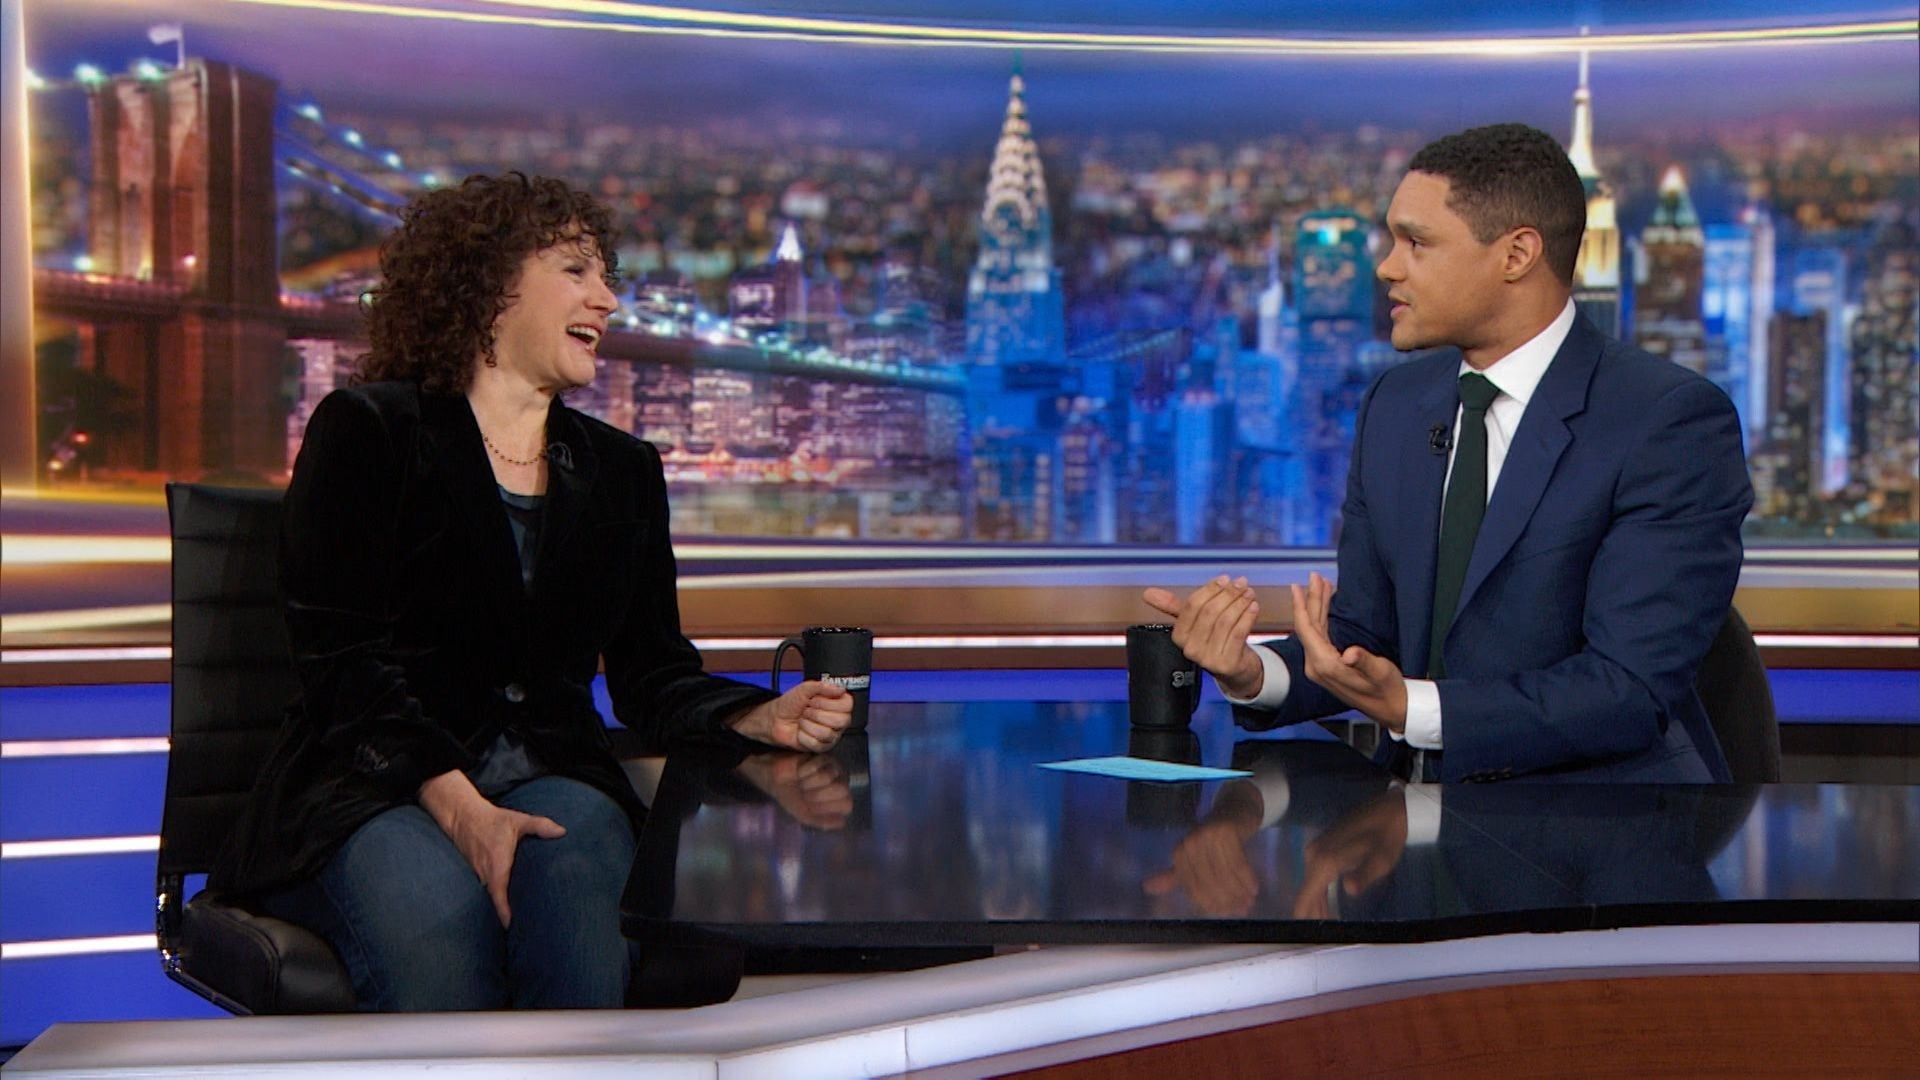 The Daily Show with Trevor Noah Season 25 :Episode 48  Susie Essman